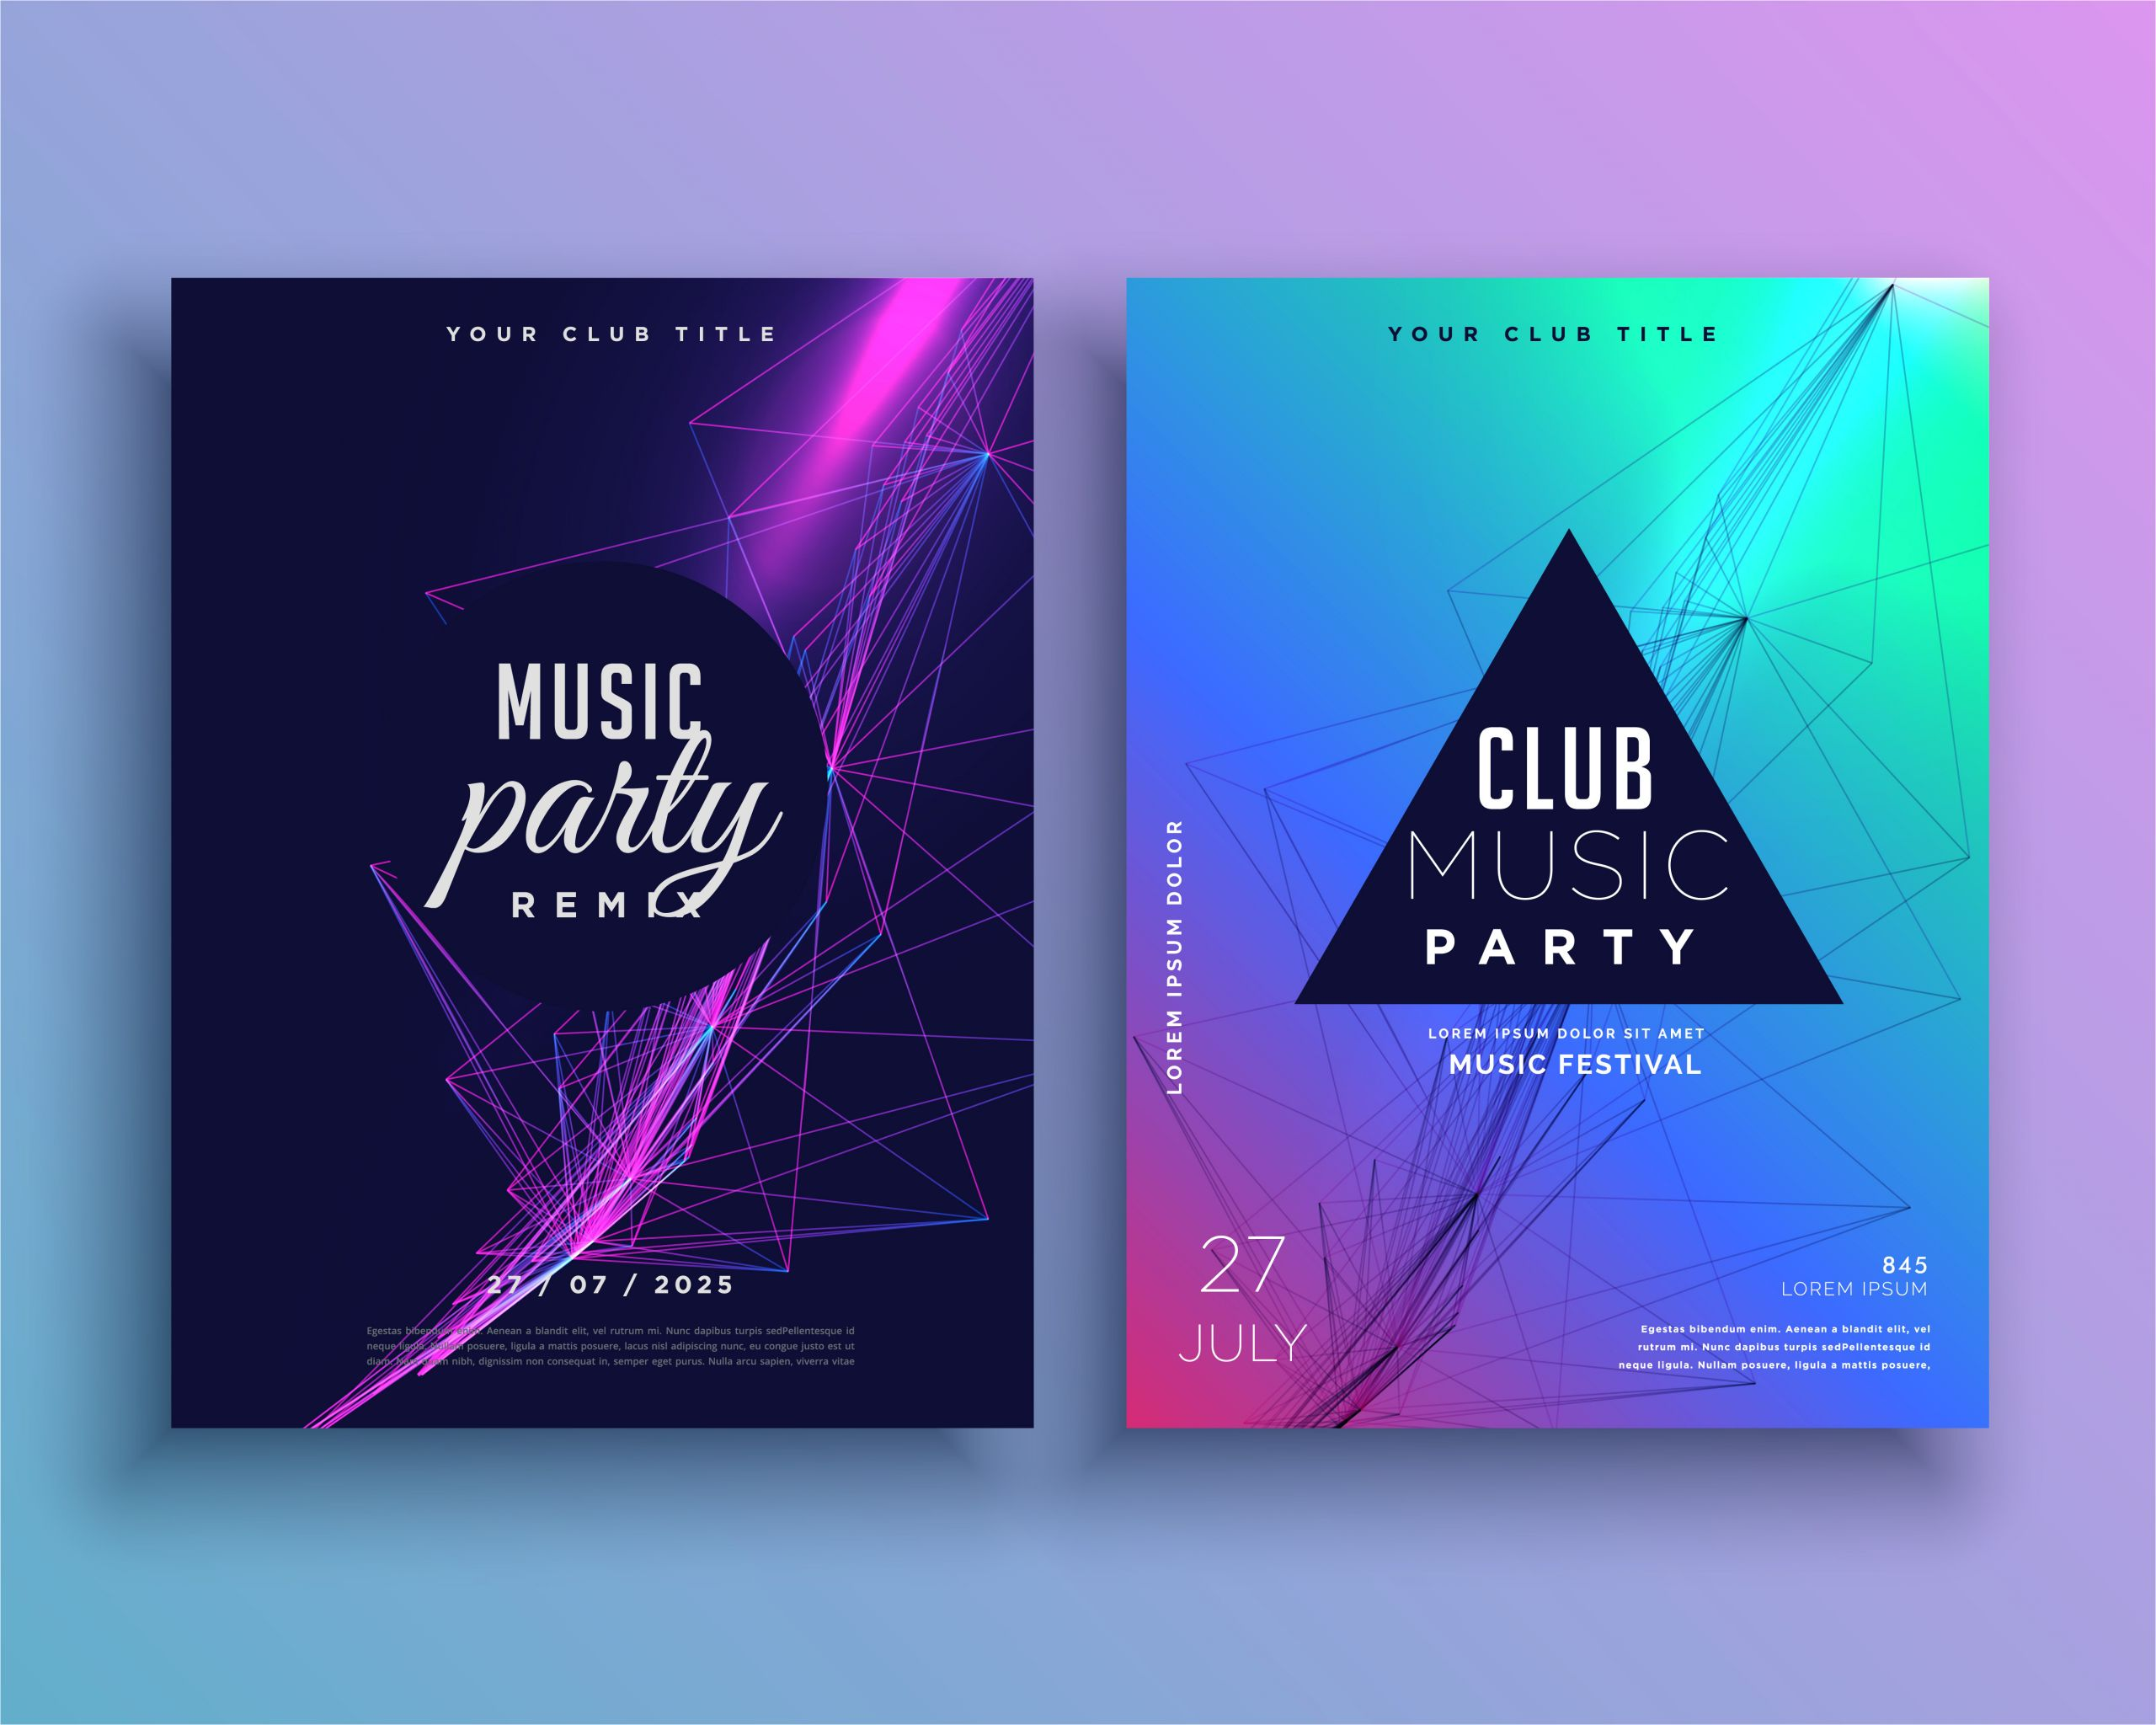 196284 music party invitation poster template set